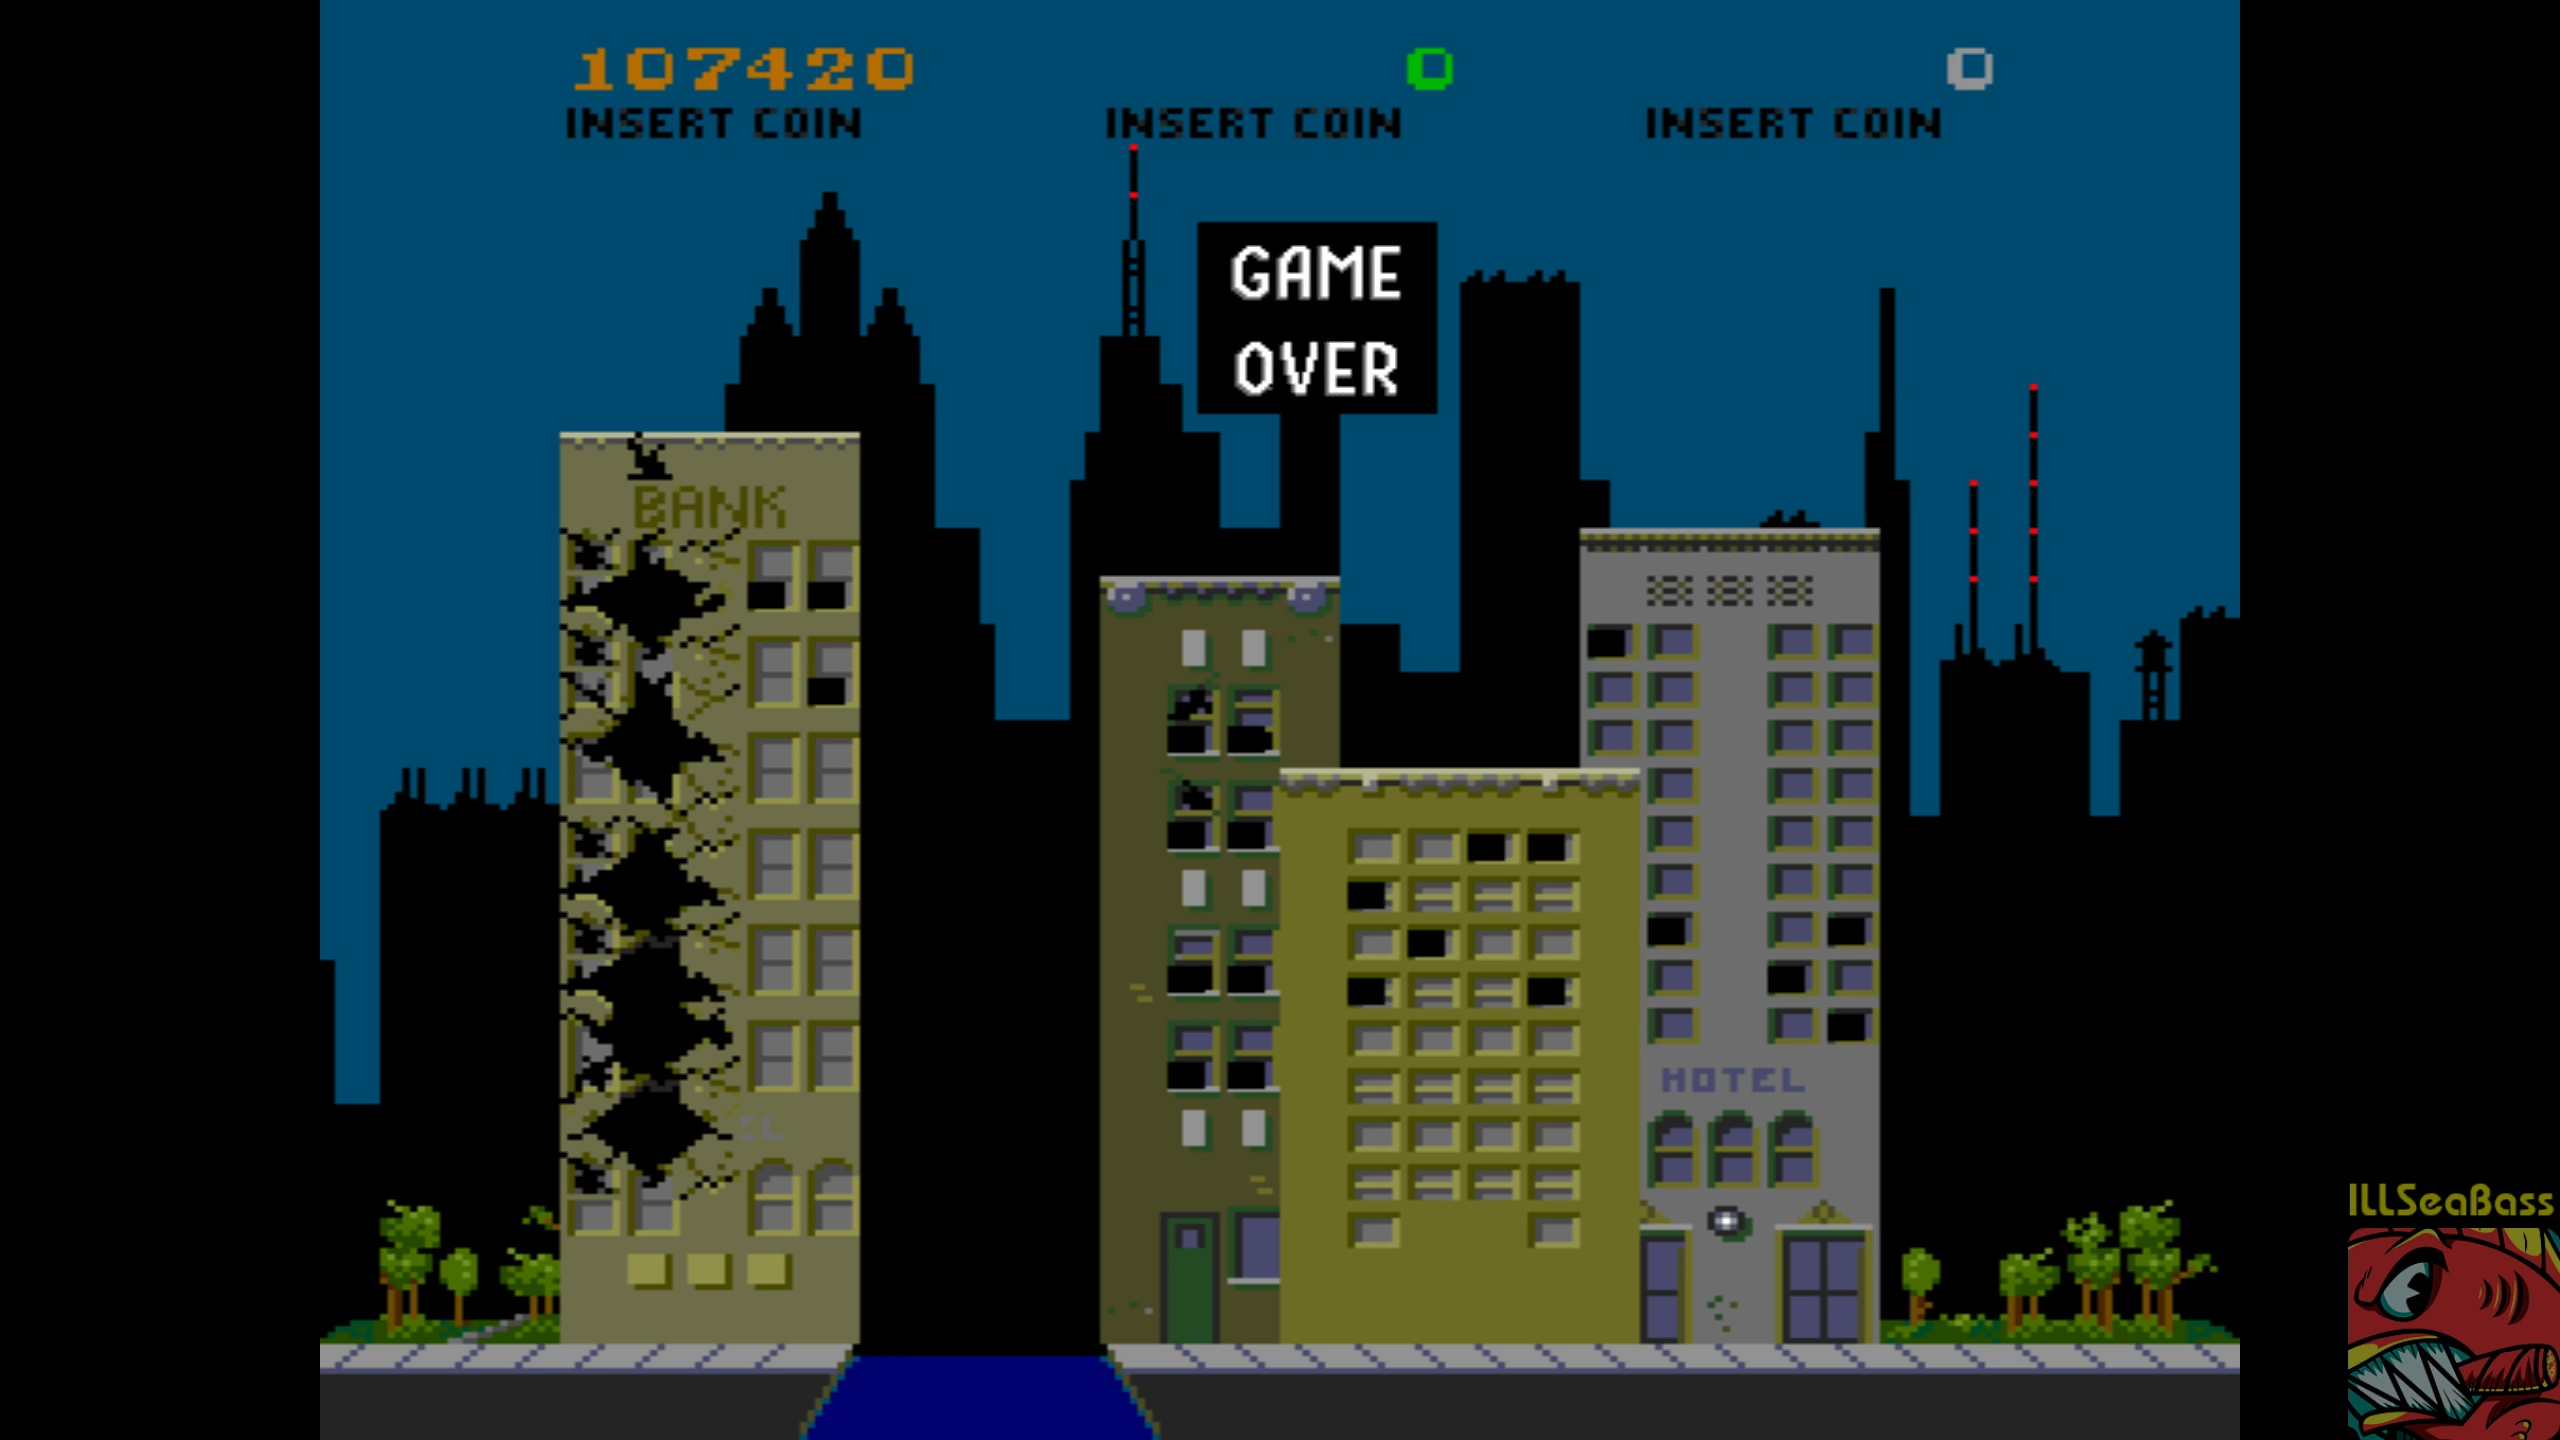 ILLSeaBass: Rampage (Arcade Emulated / M.A.M.E.) 107,420 points on 2018-04-02 23:43:49